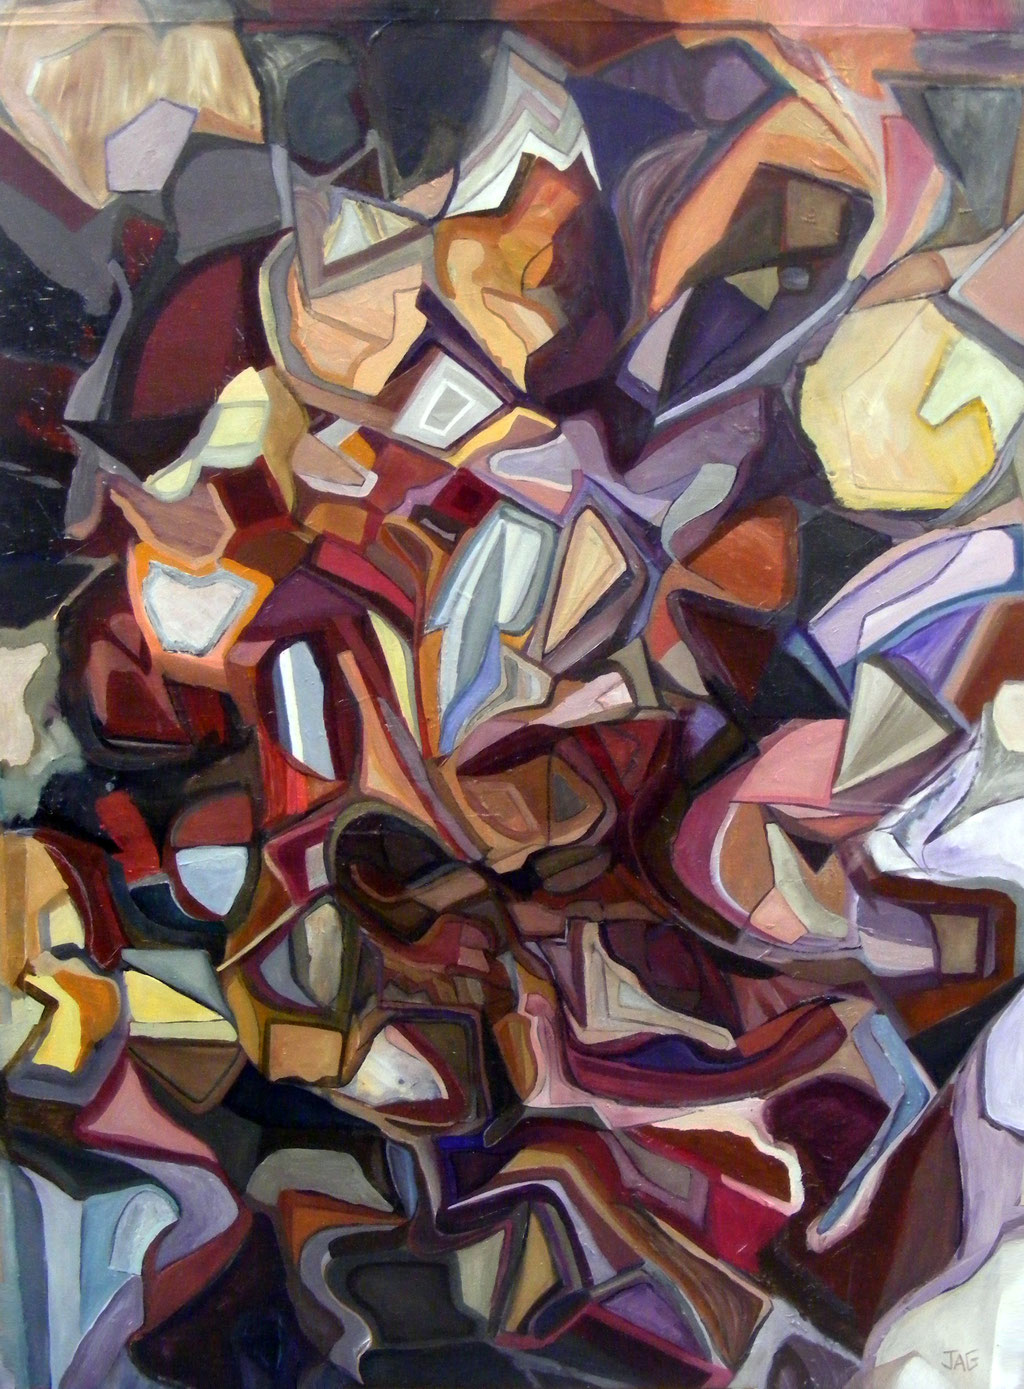 'Earth, Wind, Fire and Water' oil, emulsion, acrylic and pastel on canvas, 2010 - SOLD